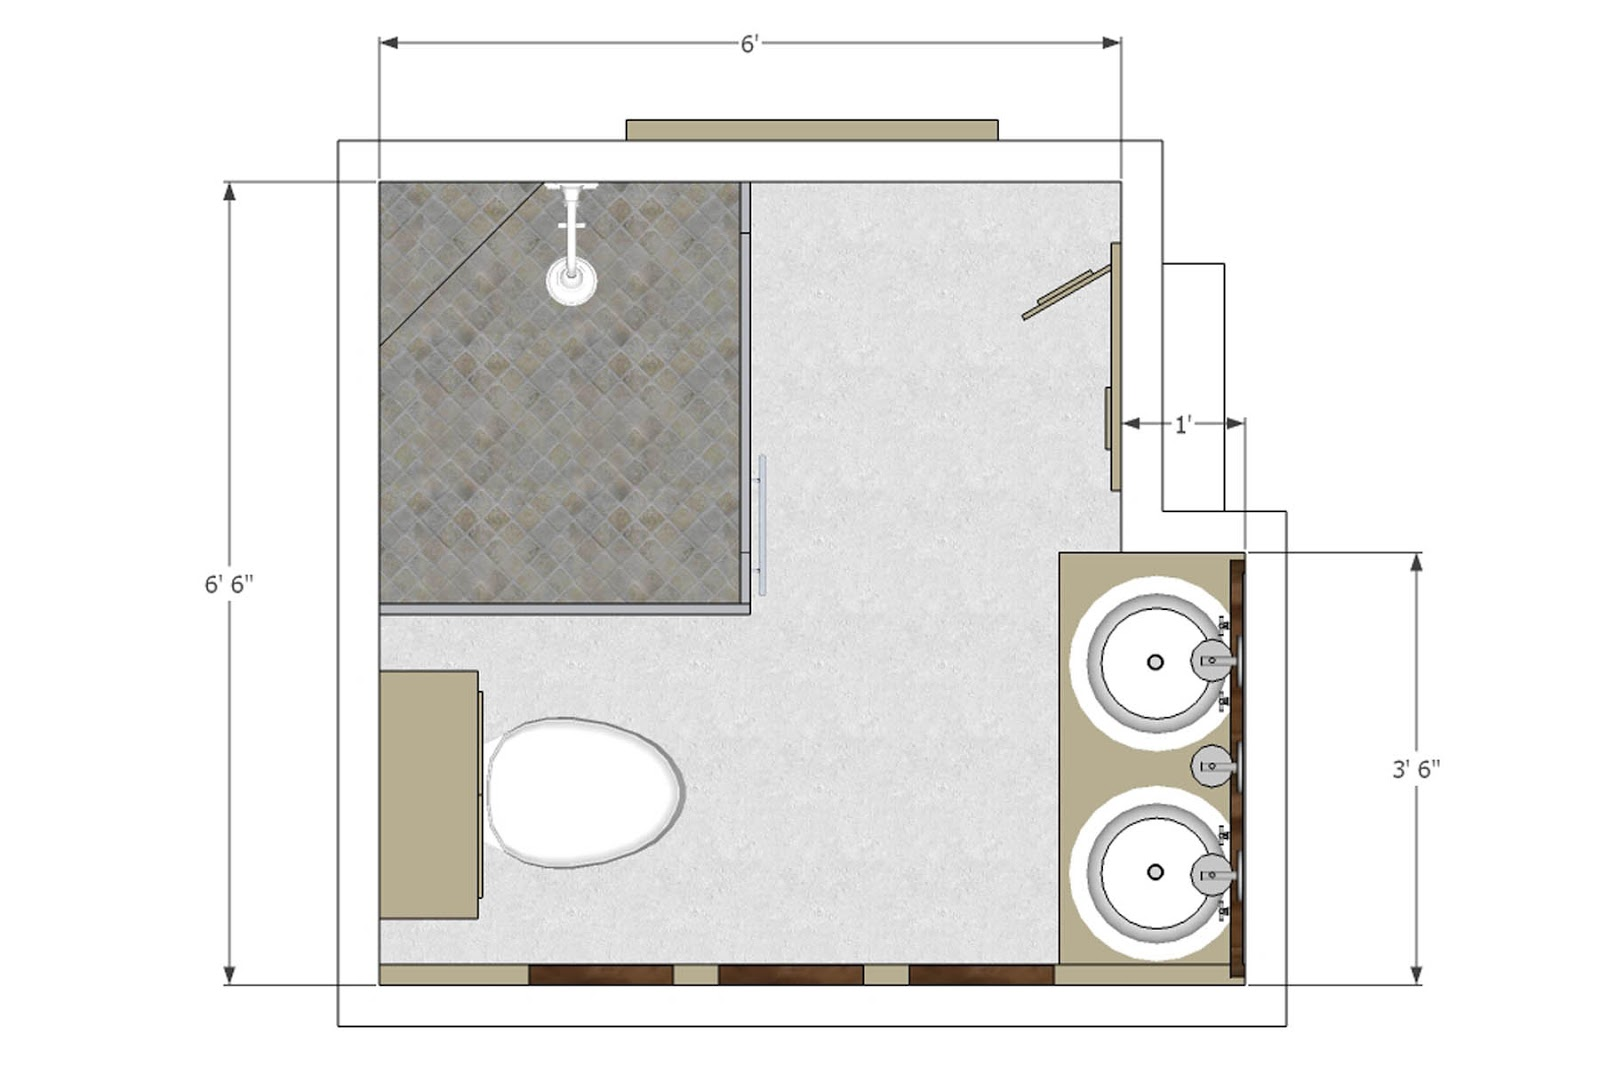 Foundation dezin decor bathroom plans views Bathroom floor plans